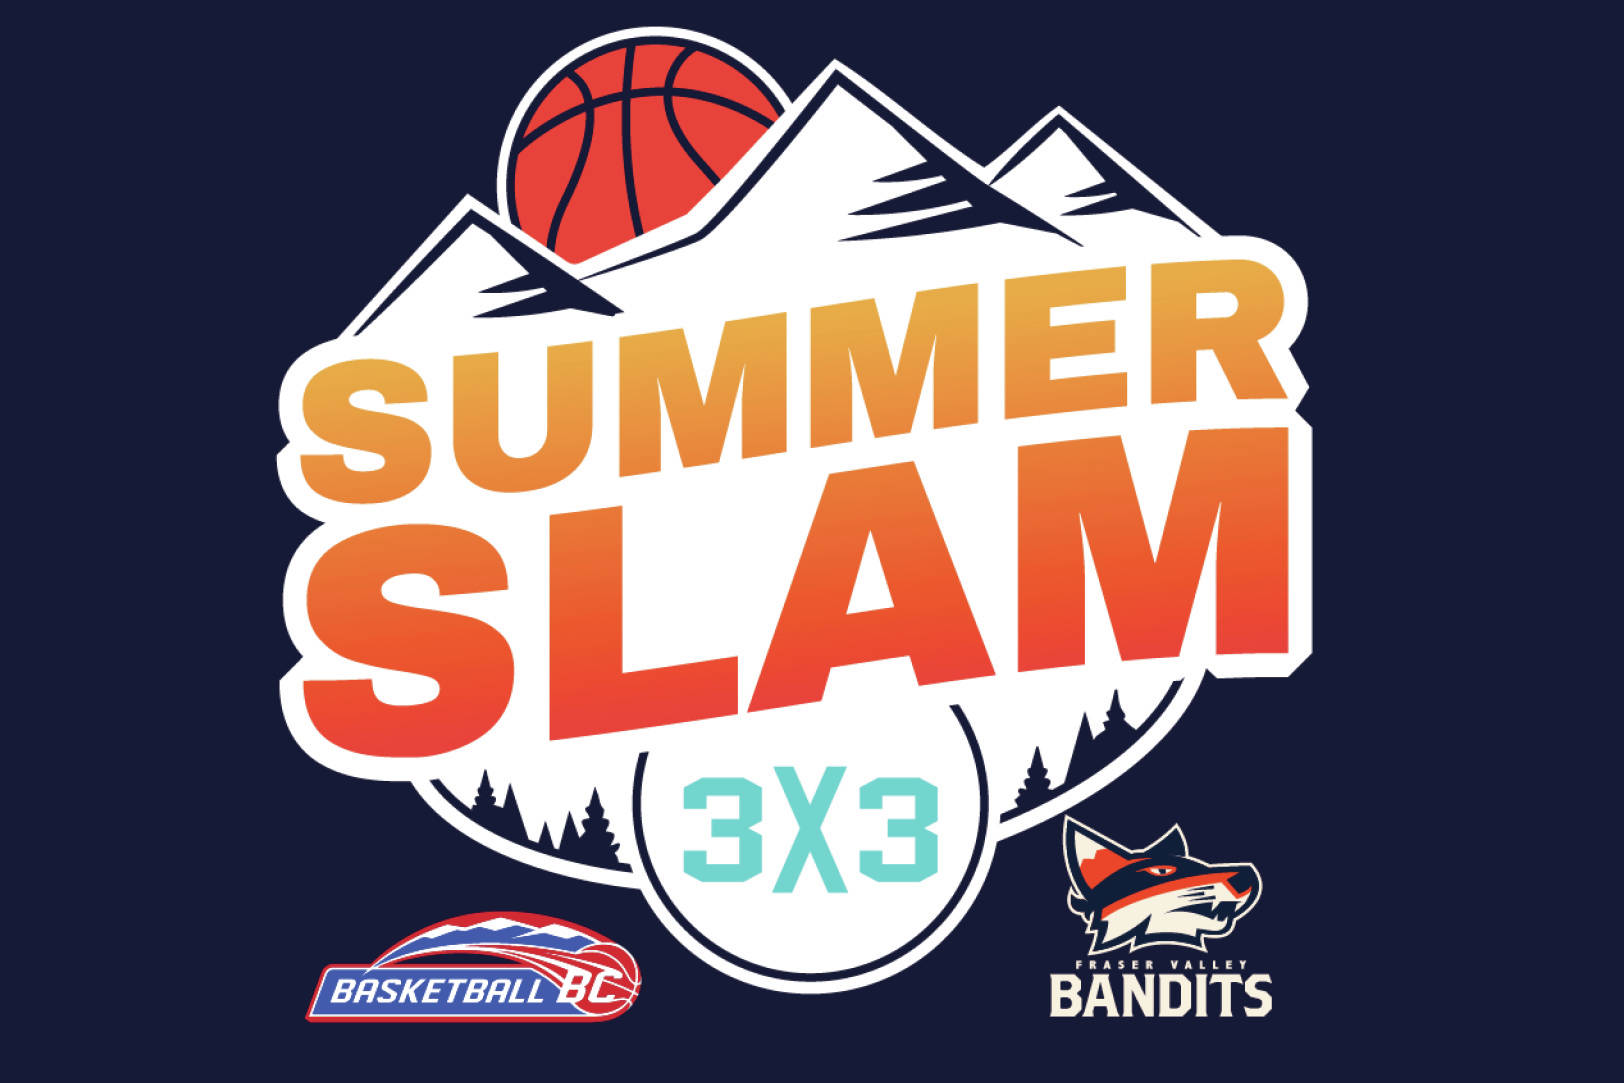 The Summer Slam 3x3 youth basketball tournament is coming to the Langley Events Centre in September.